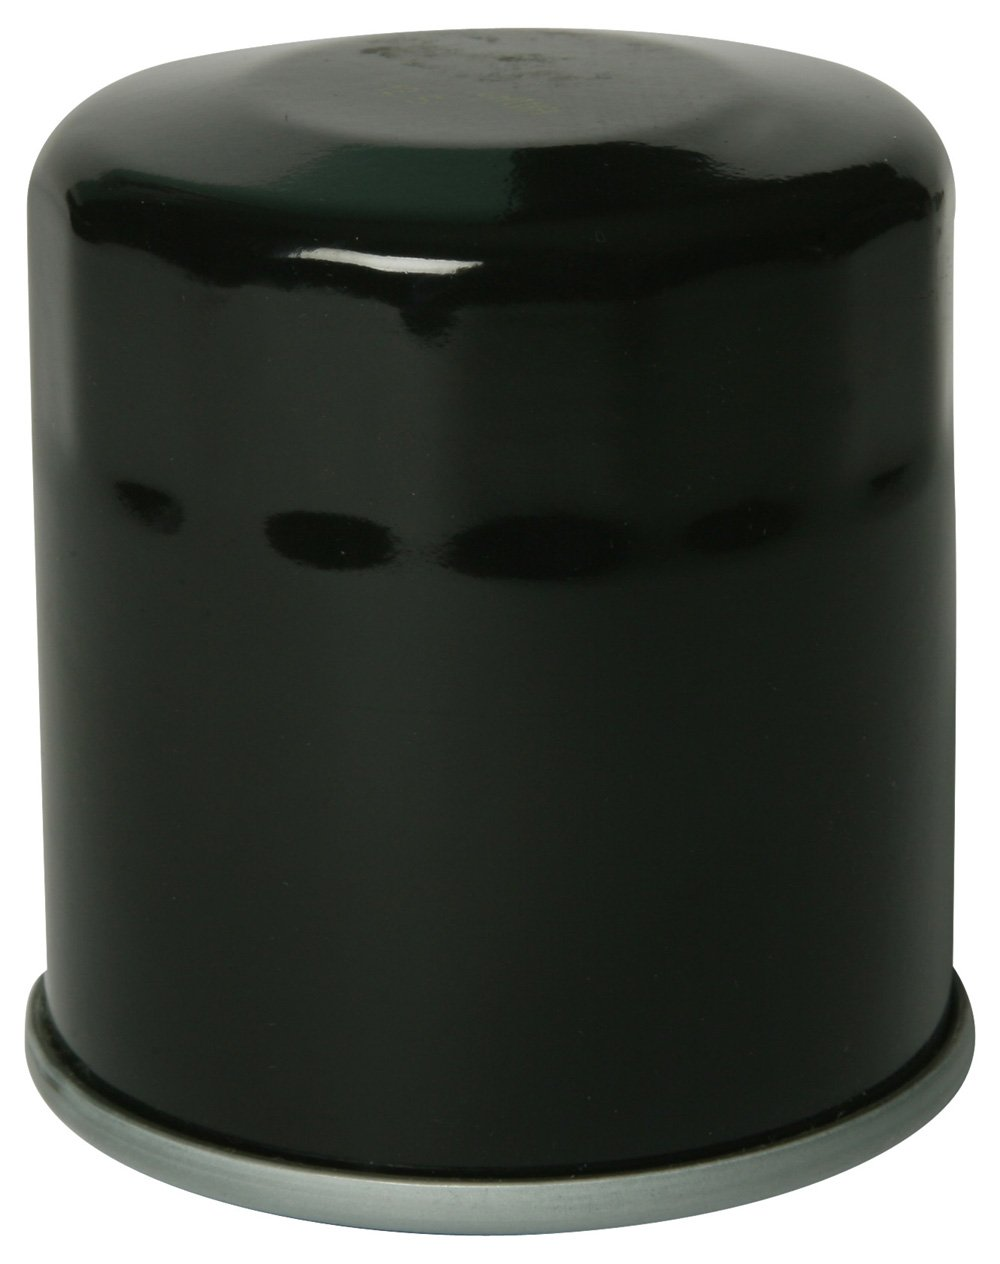 Purolator ML16817 Black Motorcycle Oil Filter, Pack of 1